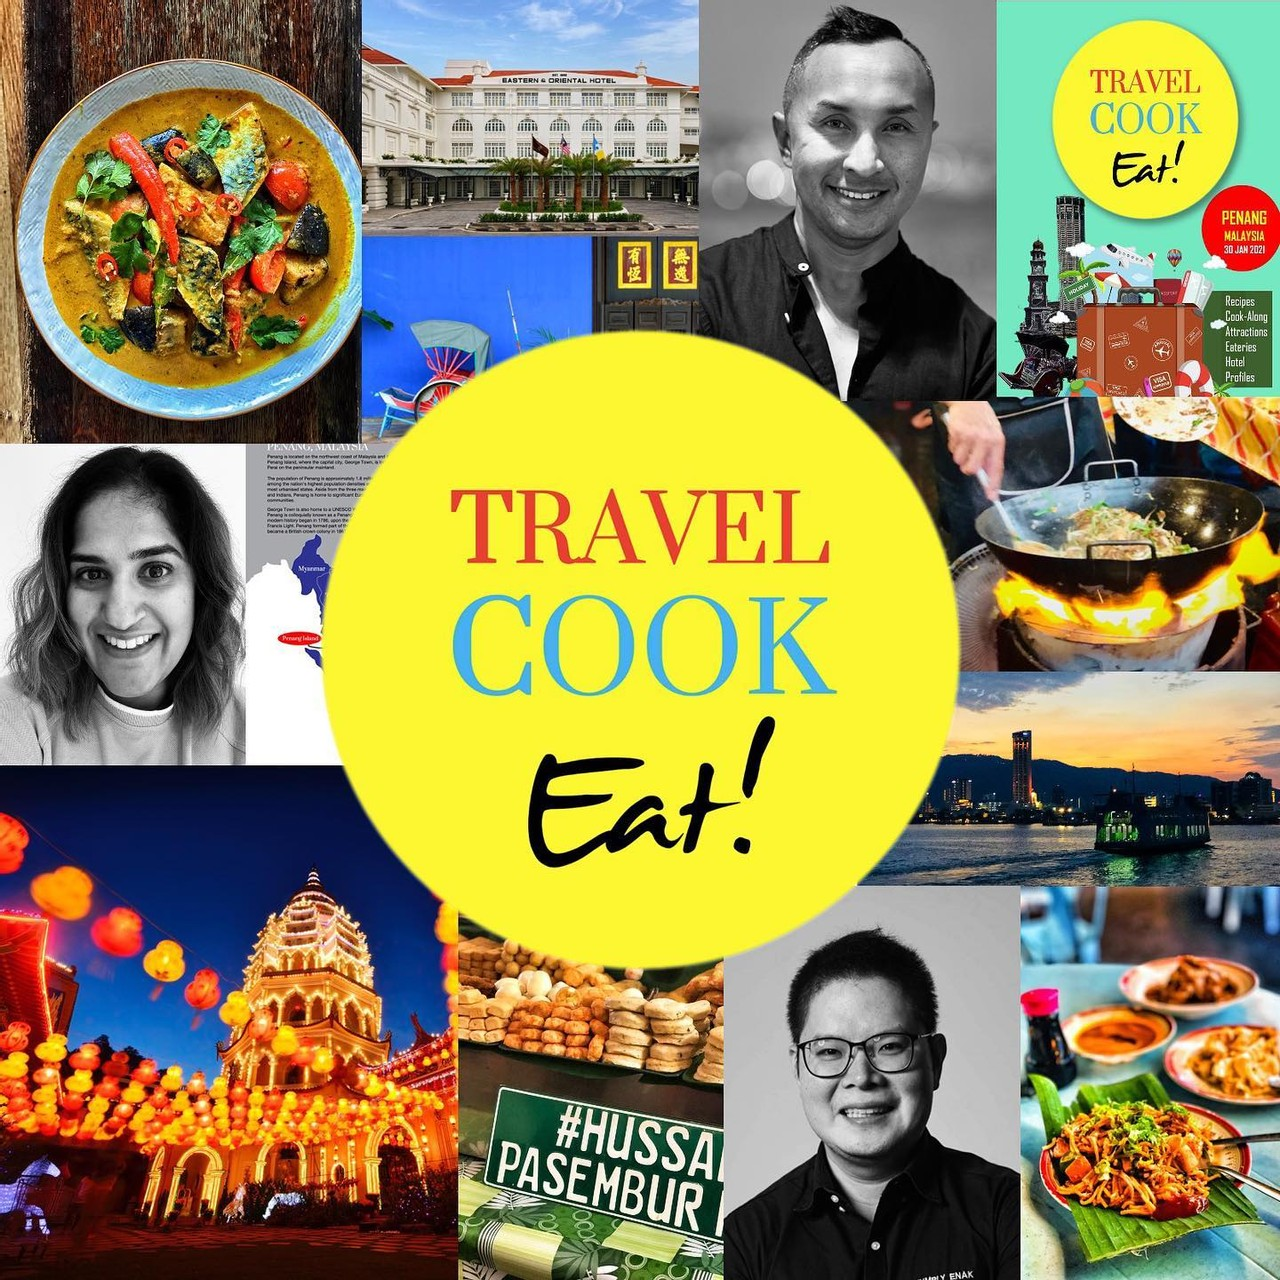 Travel Cook Eat!